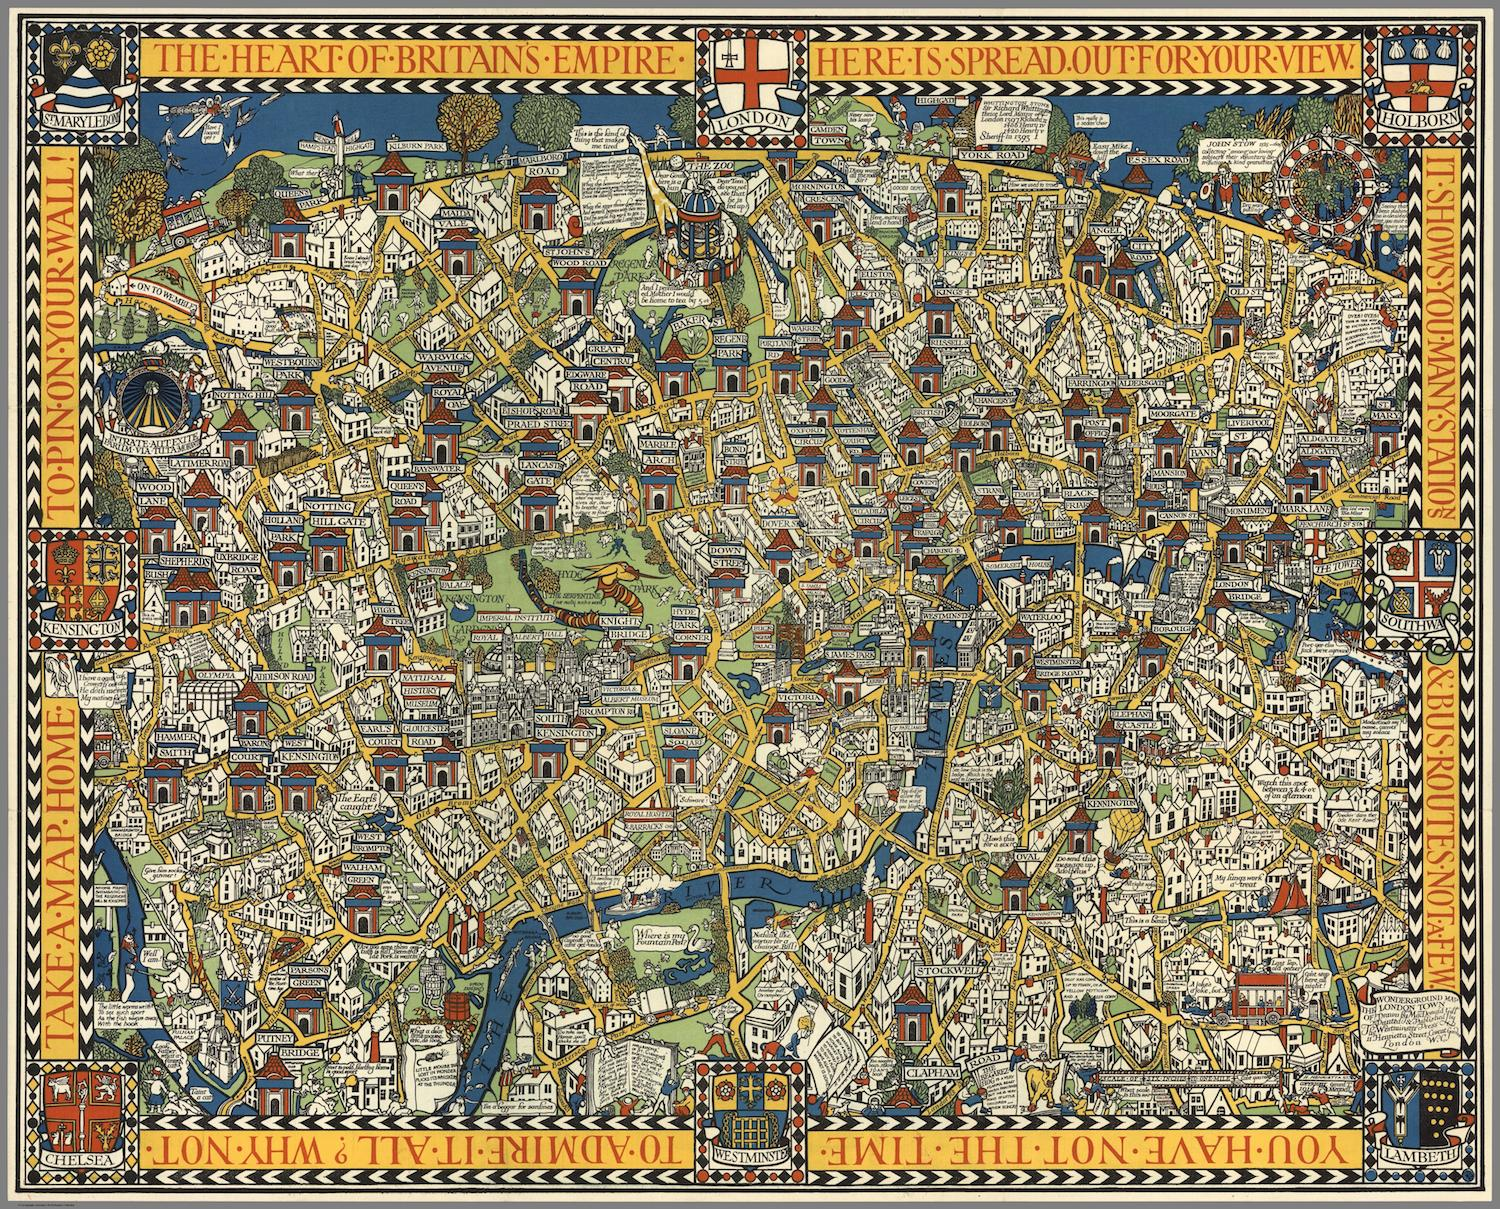 London Town Map.The Famous Wonderground Map Of London Town Made Time Travel Possible